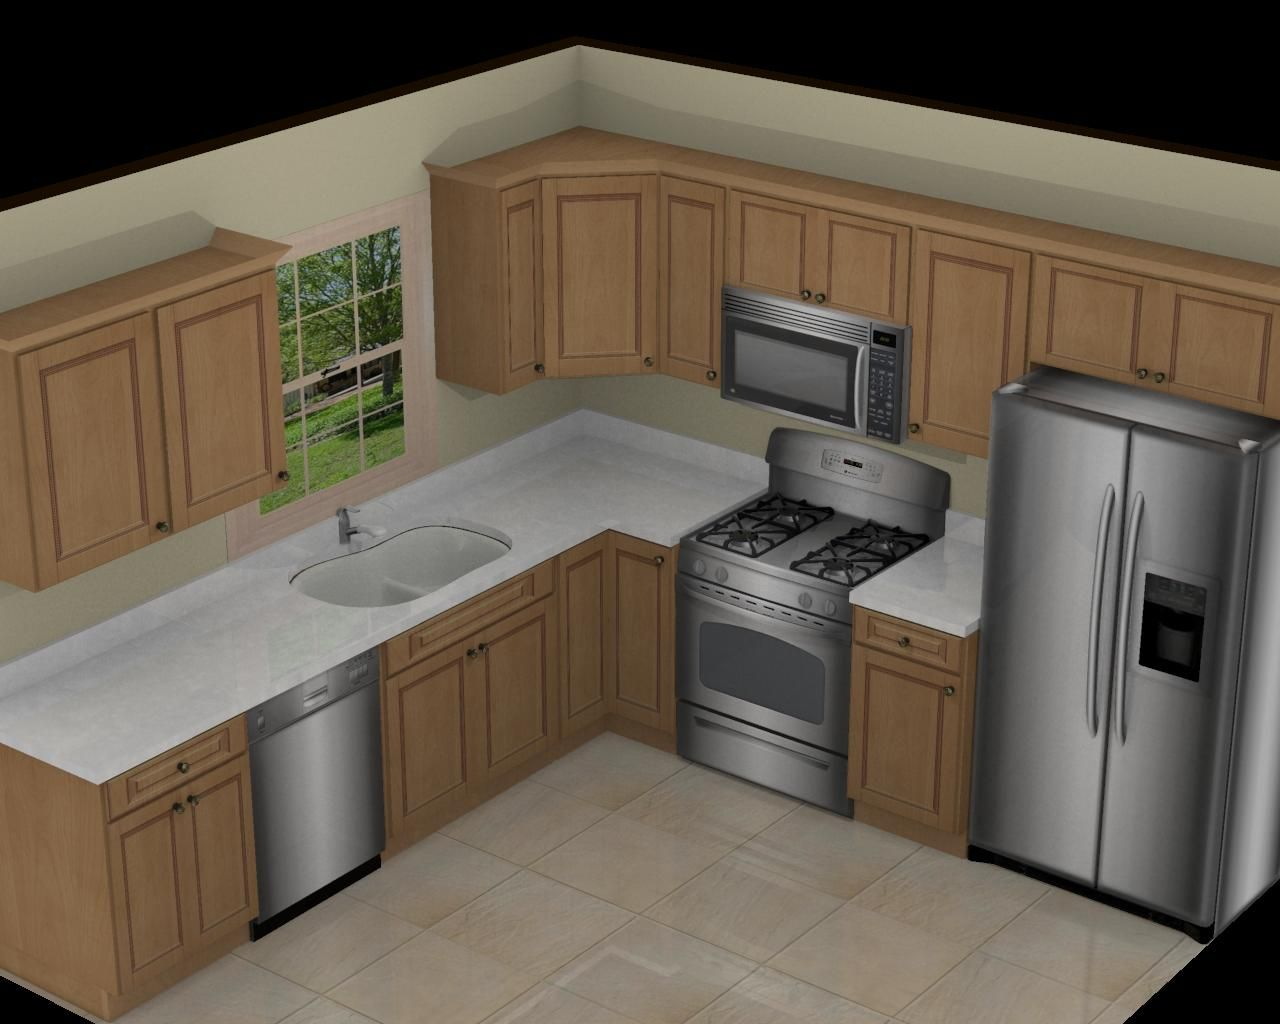 Autocad Kitchen Design Painting Inspiration Decorating Design